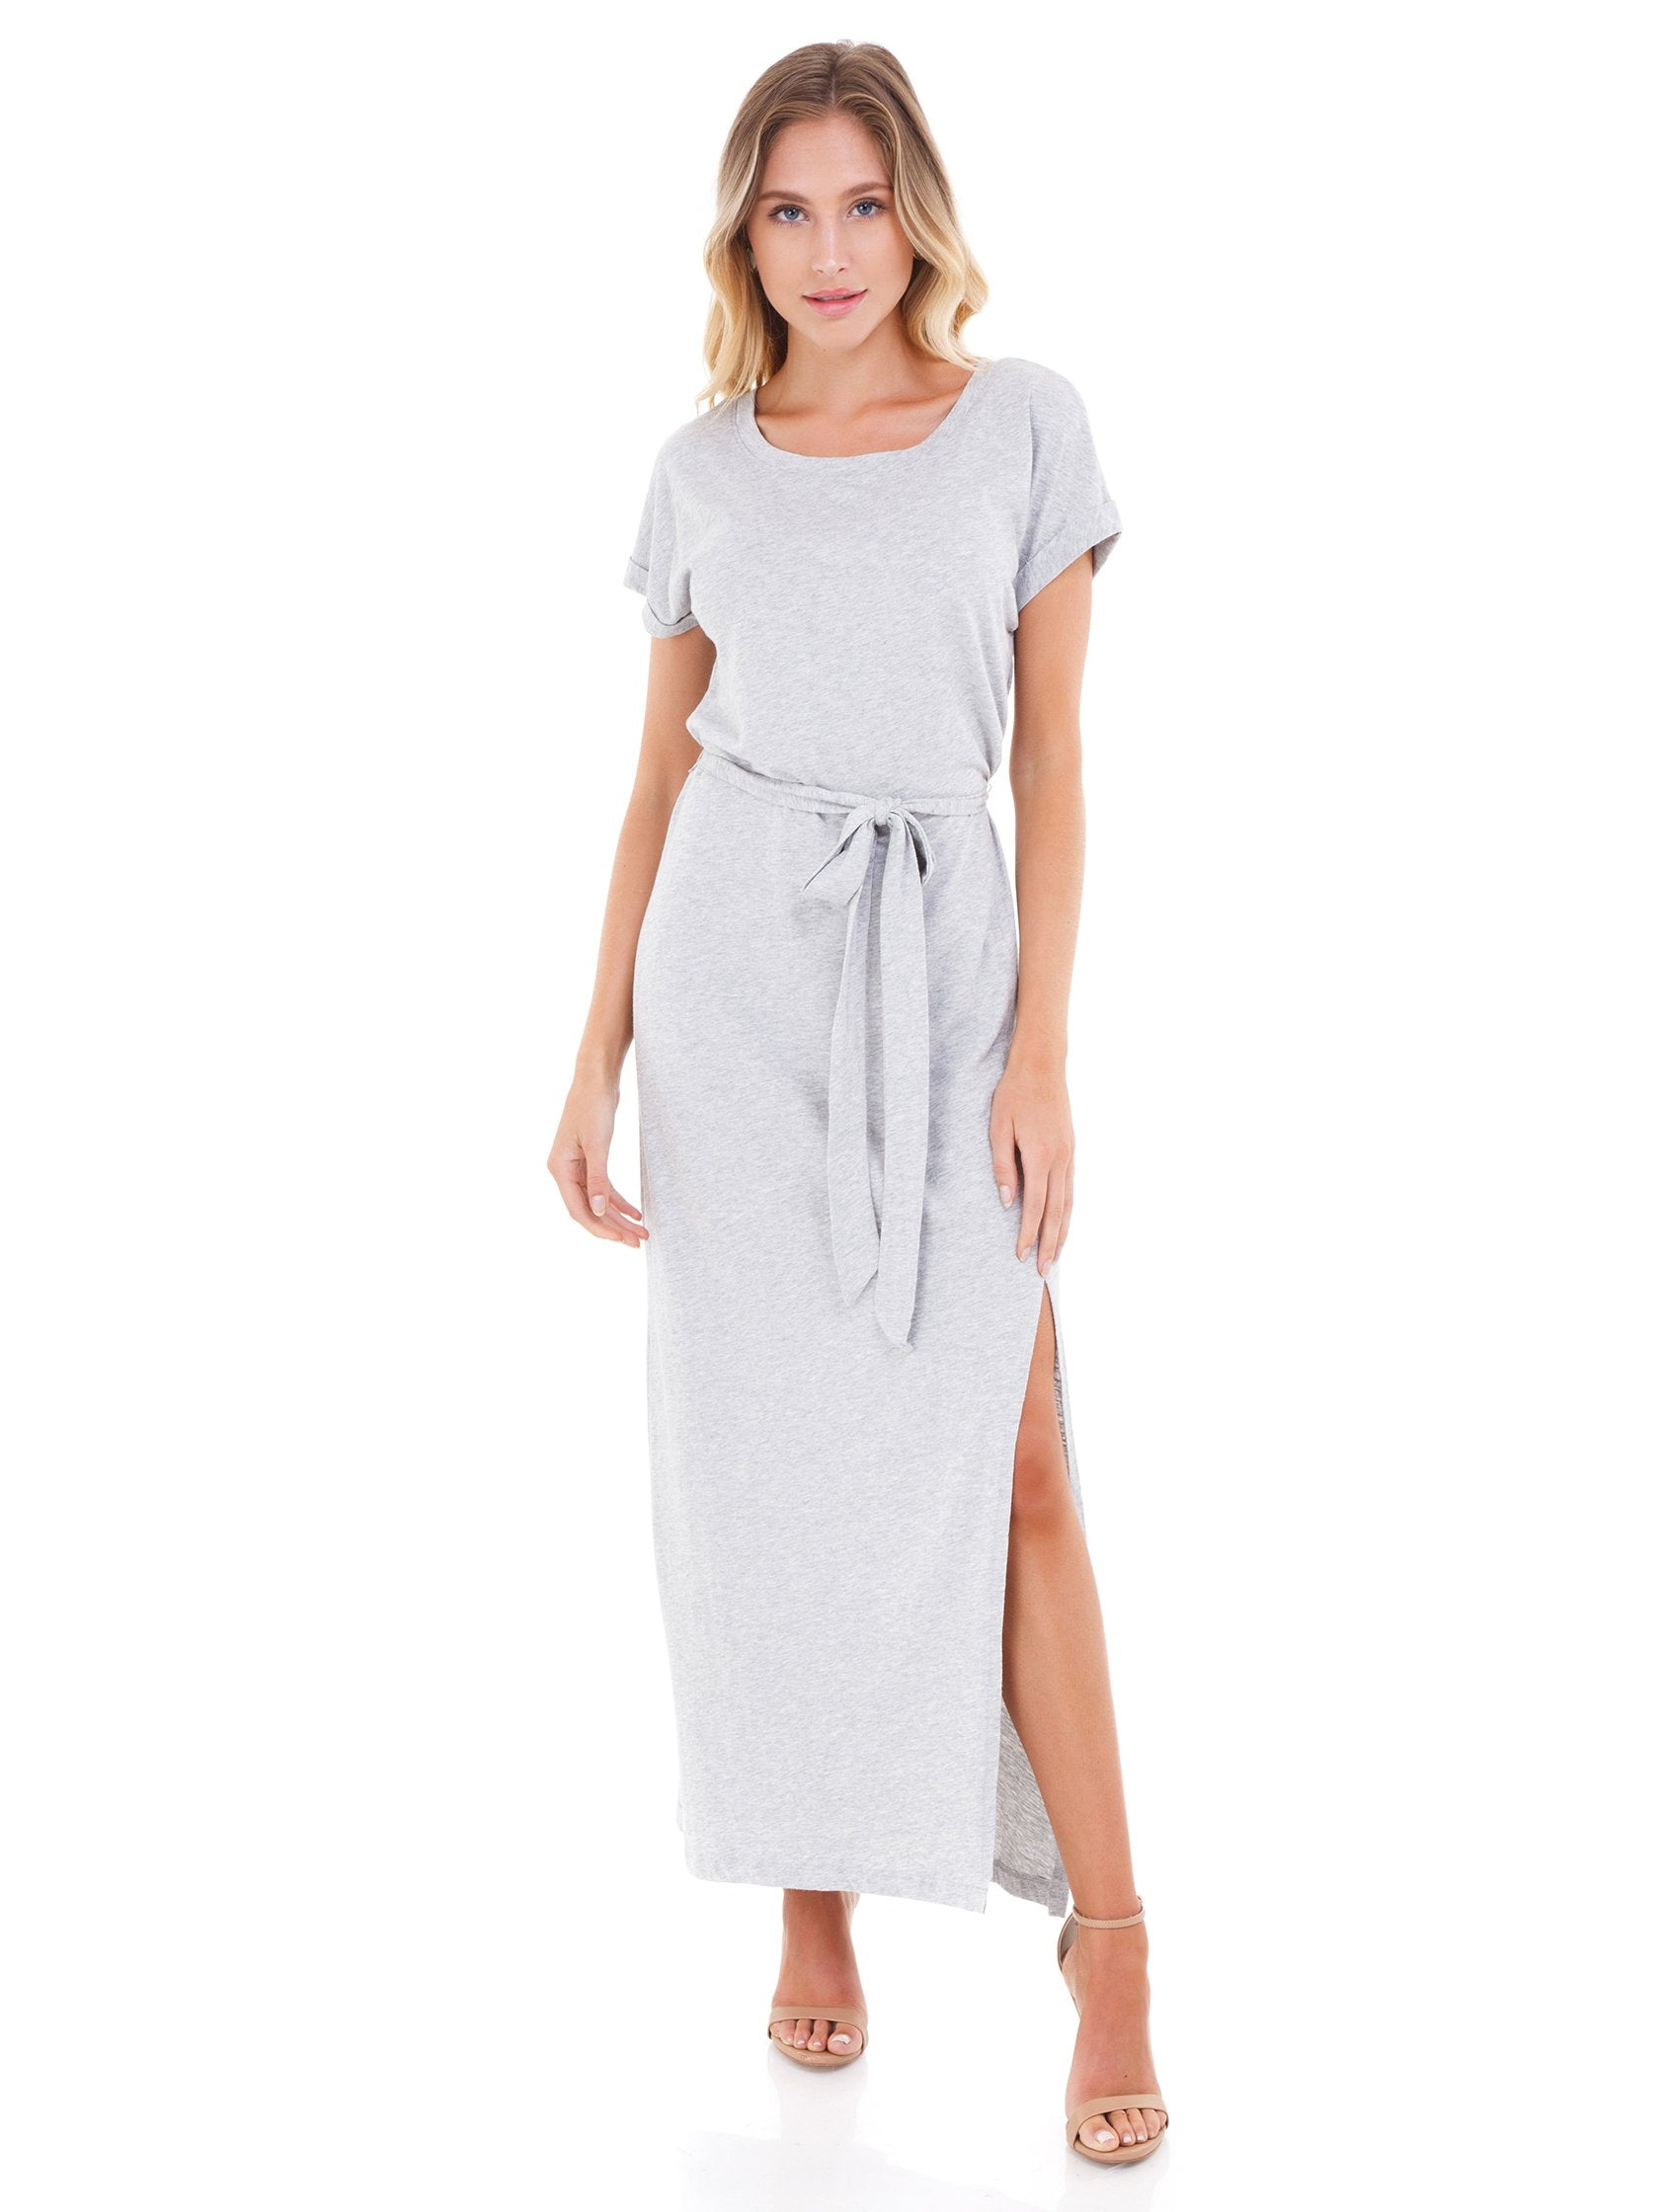 3b9868d60338 Women outfit in a dress rental from SANCTUARY called Isle T-shirt Maxi Dress